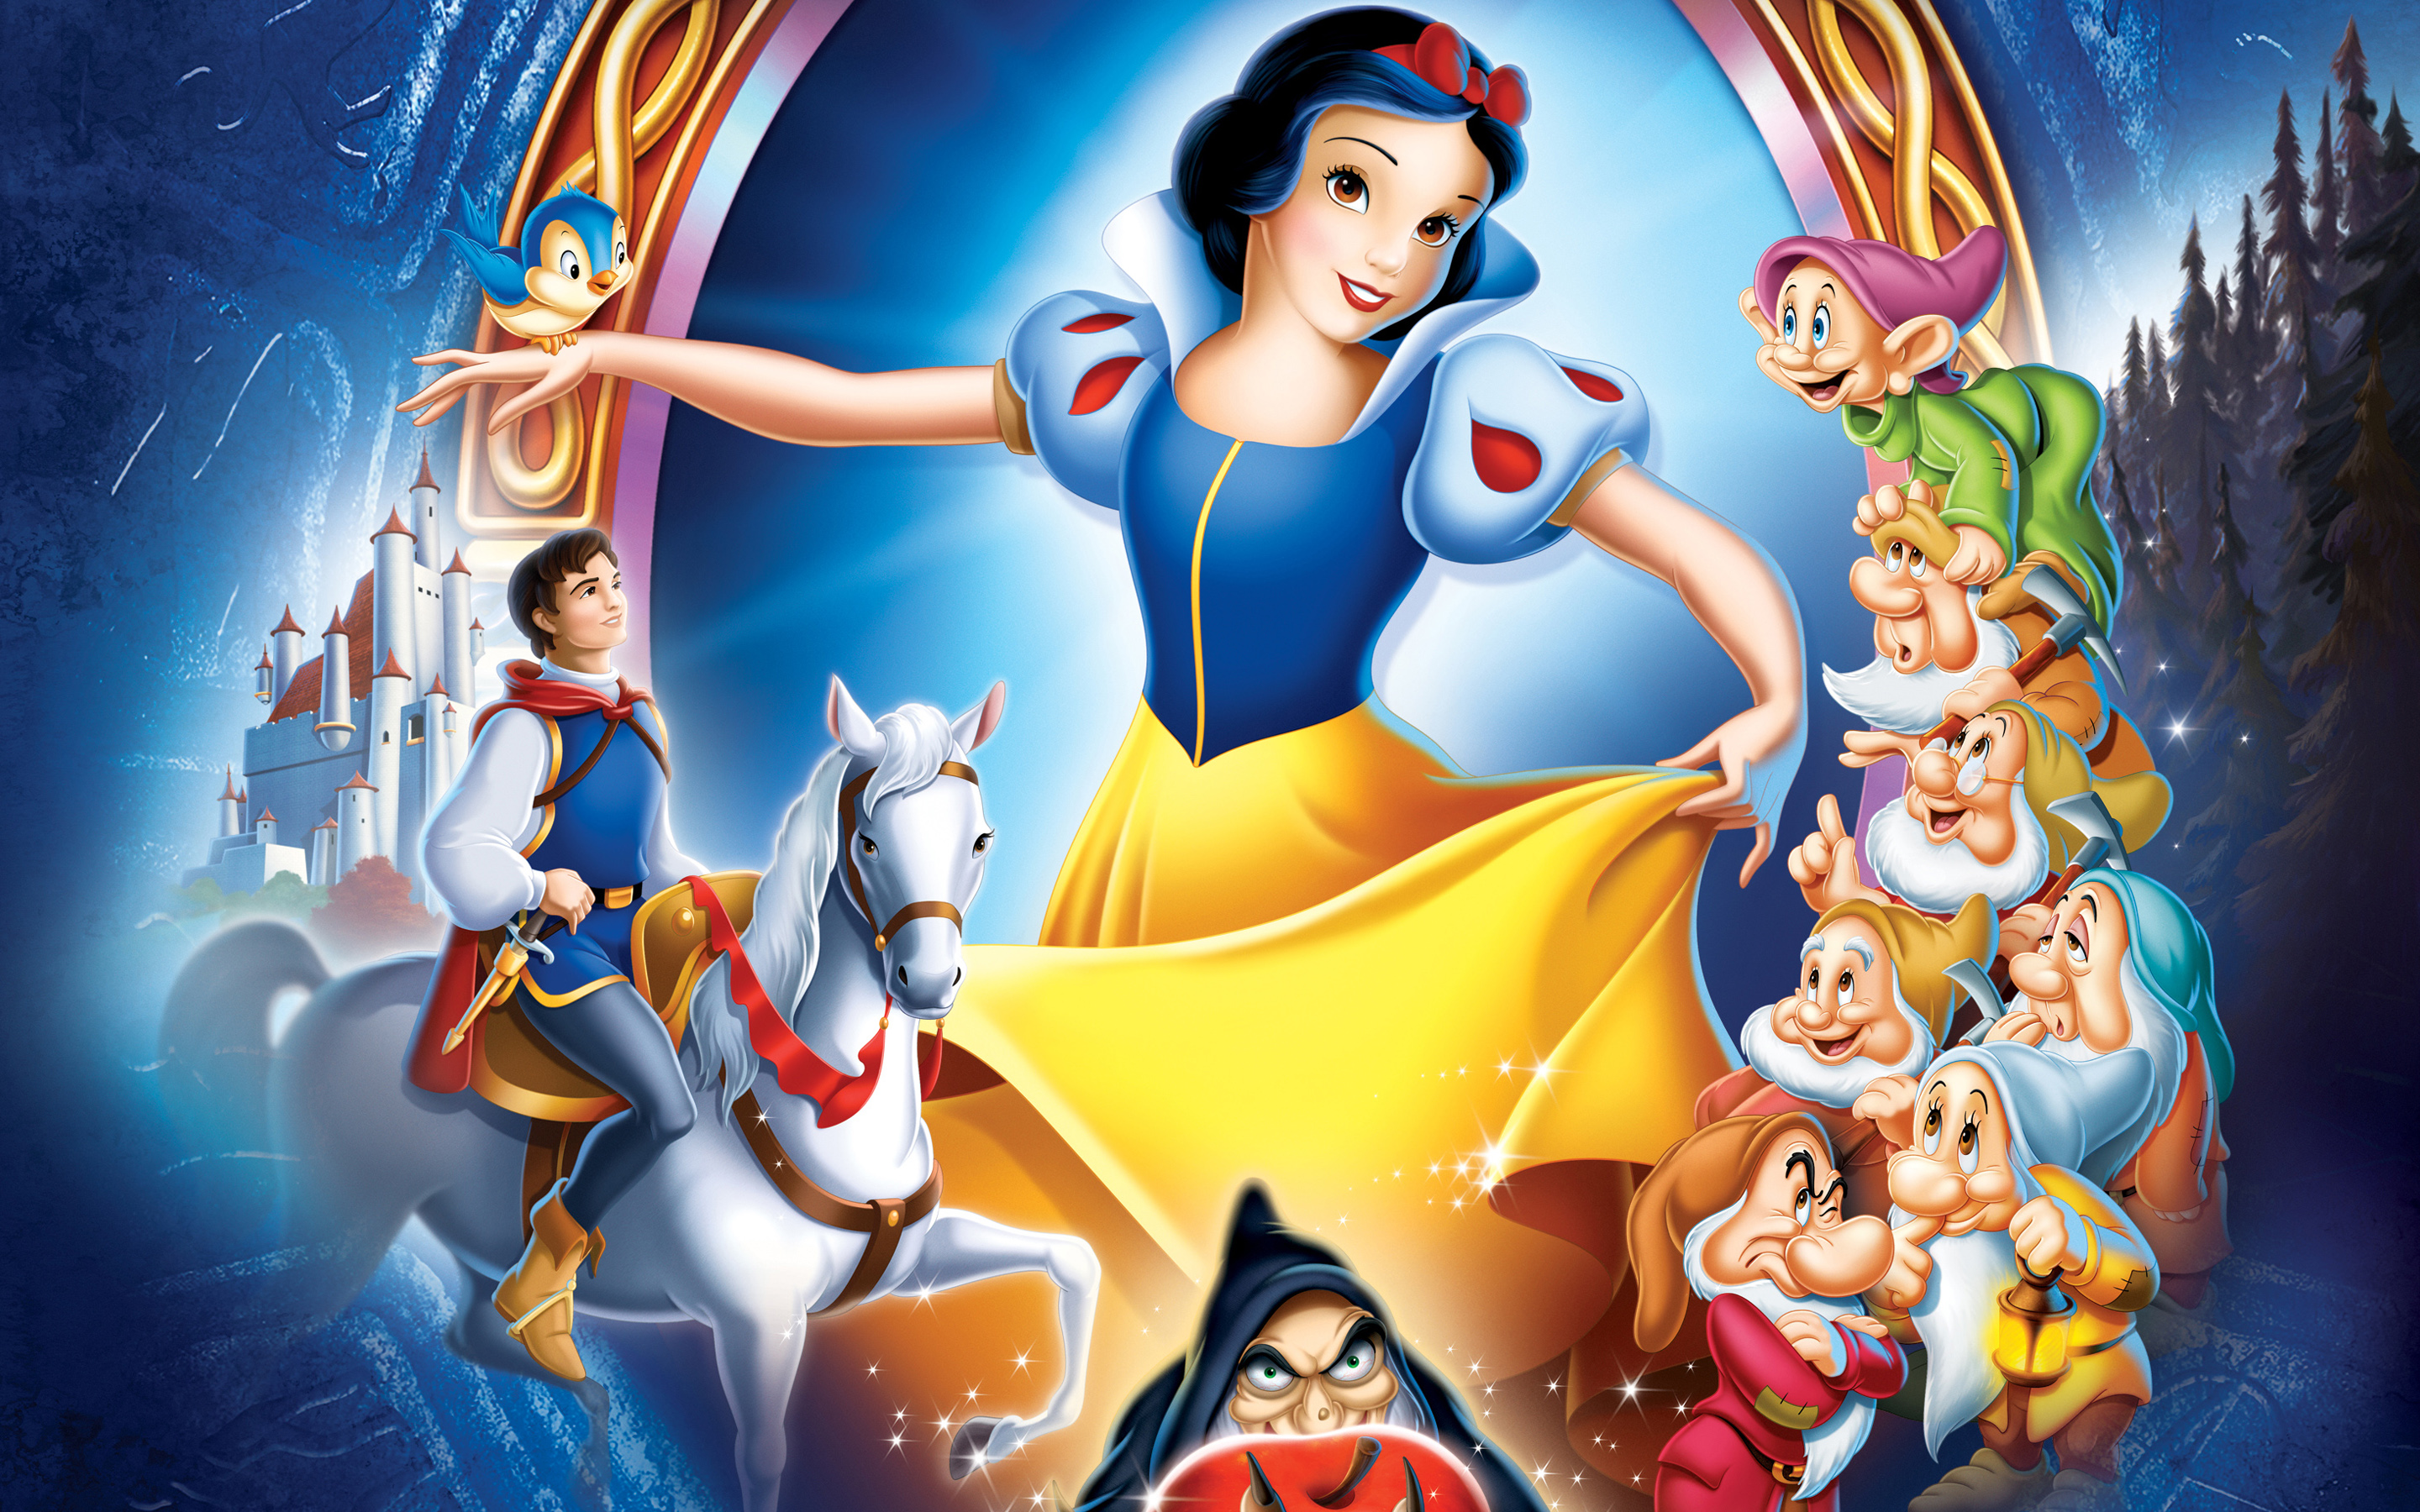 Disney Enchanted Wallpaper In X Pixel Snow White Seven Dwarfs And Prince White Dance Sing And Have Fun Tv Movies Wallpaper